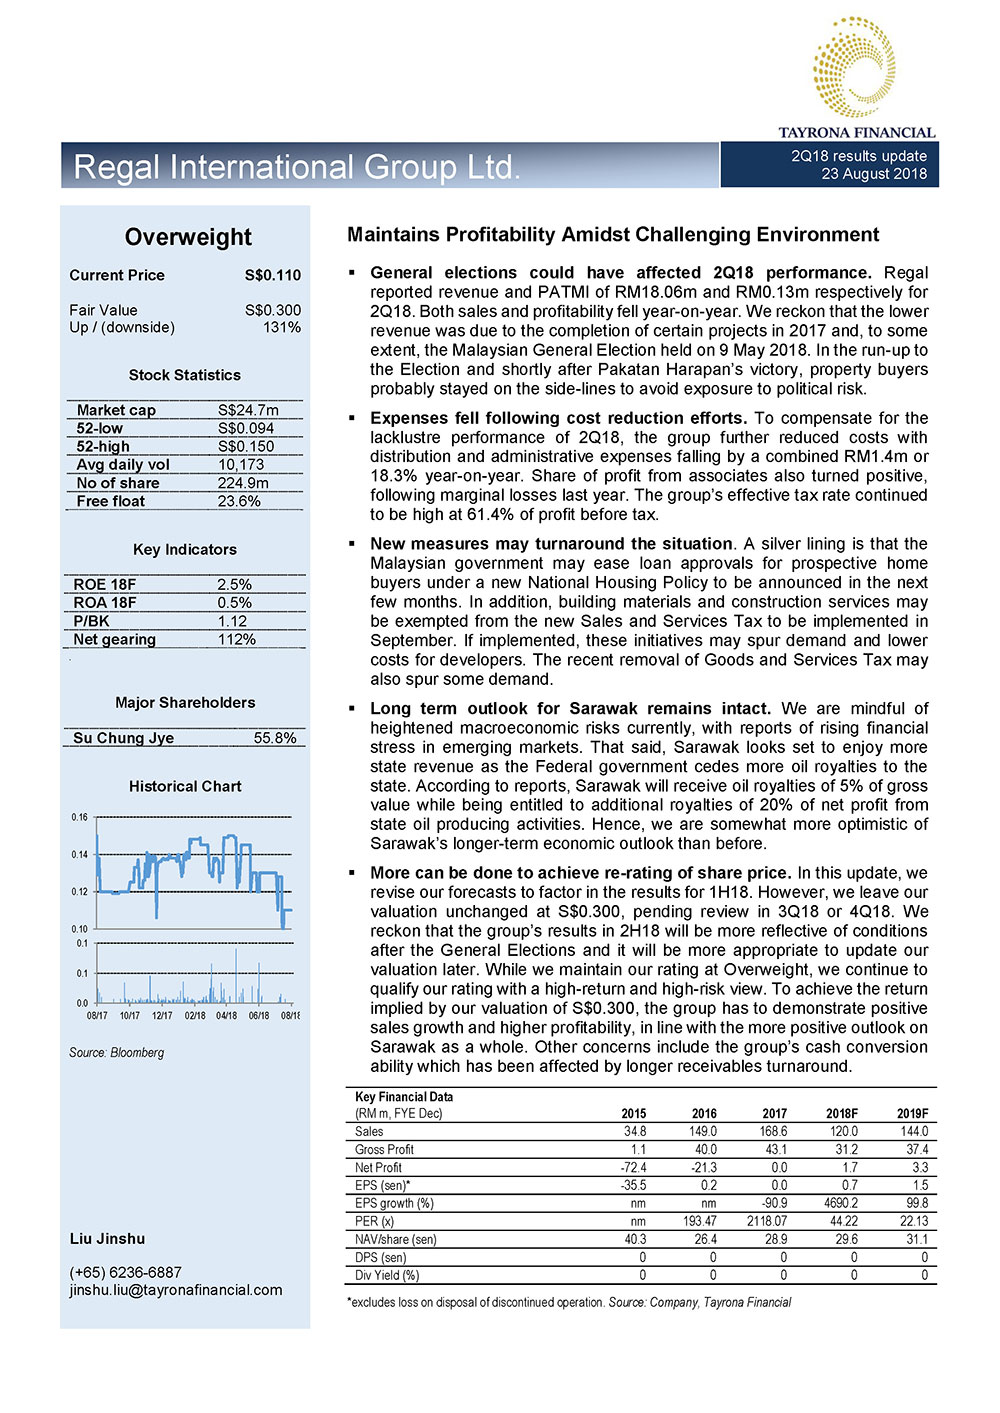 Tayrona Financial* Research Report – 2Q18 Results Update